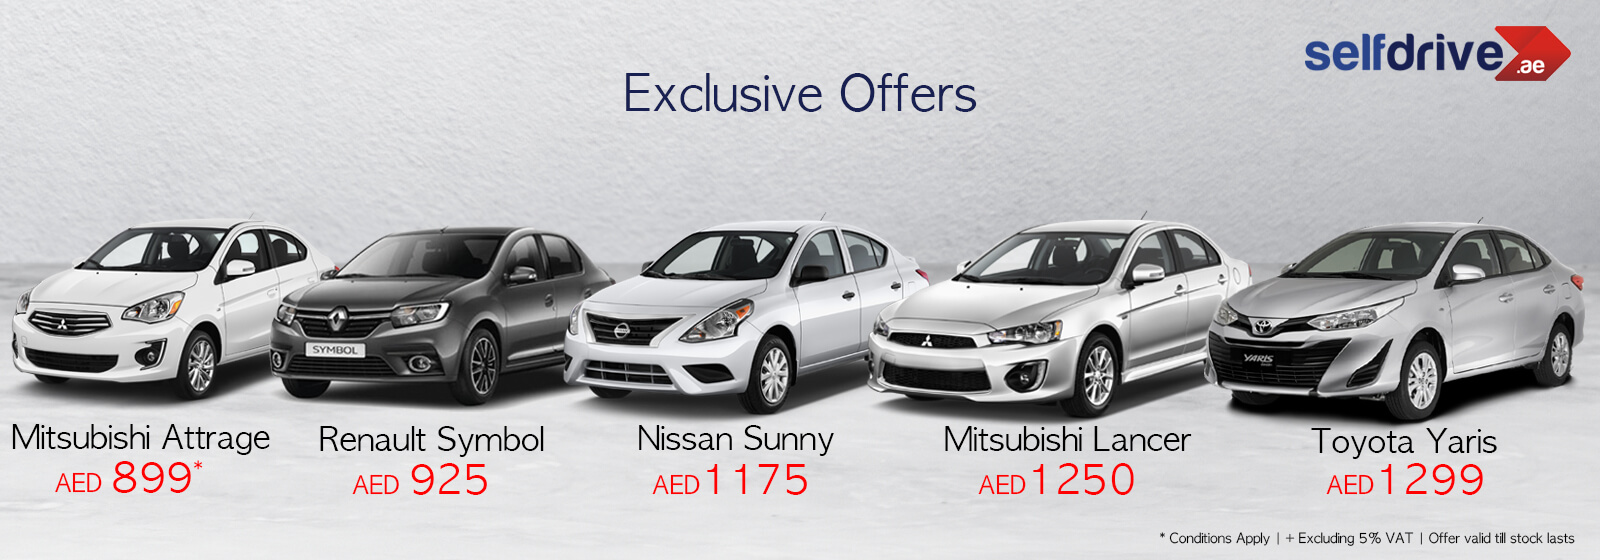 Exclusive offer for wide range of Sedan